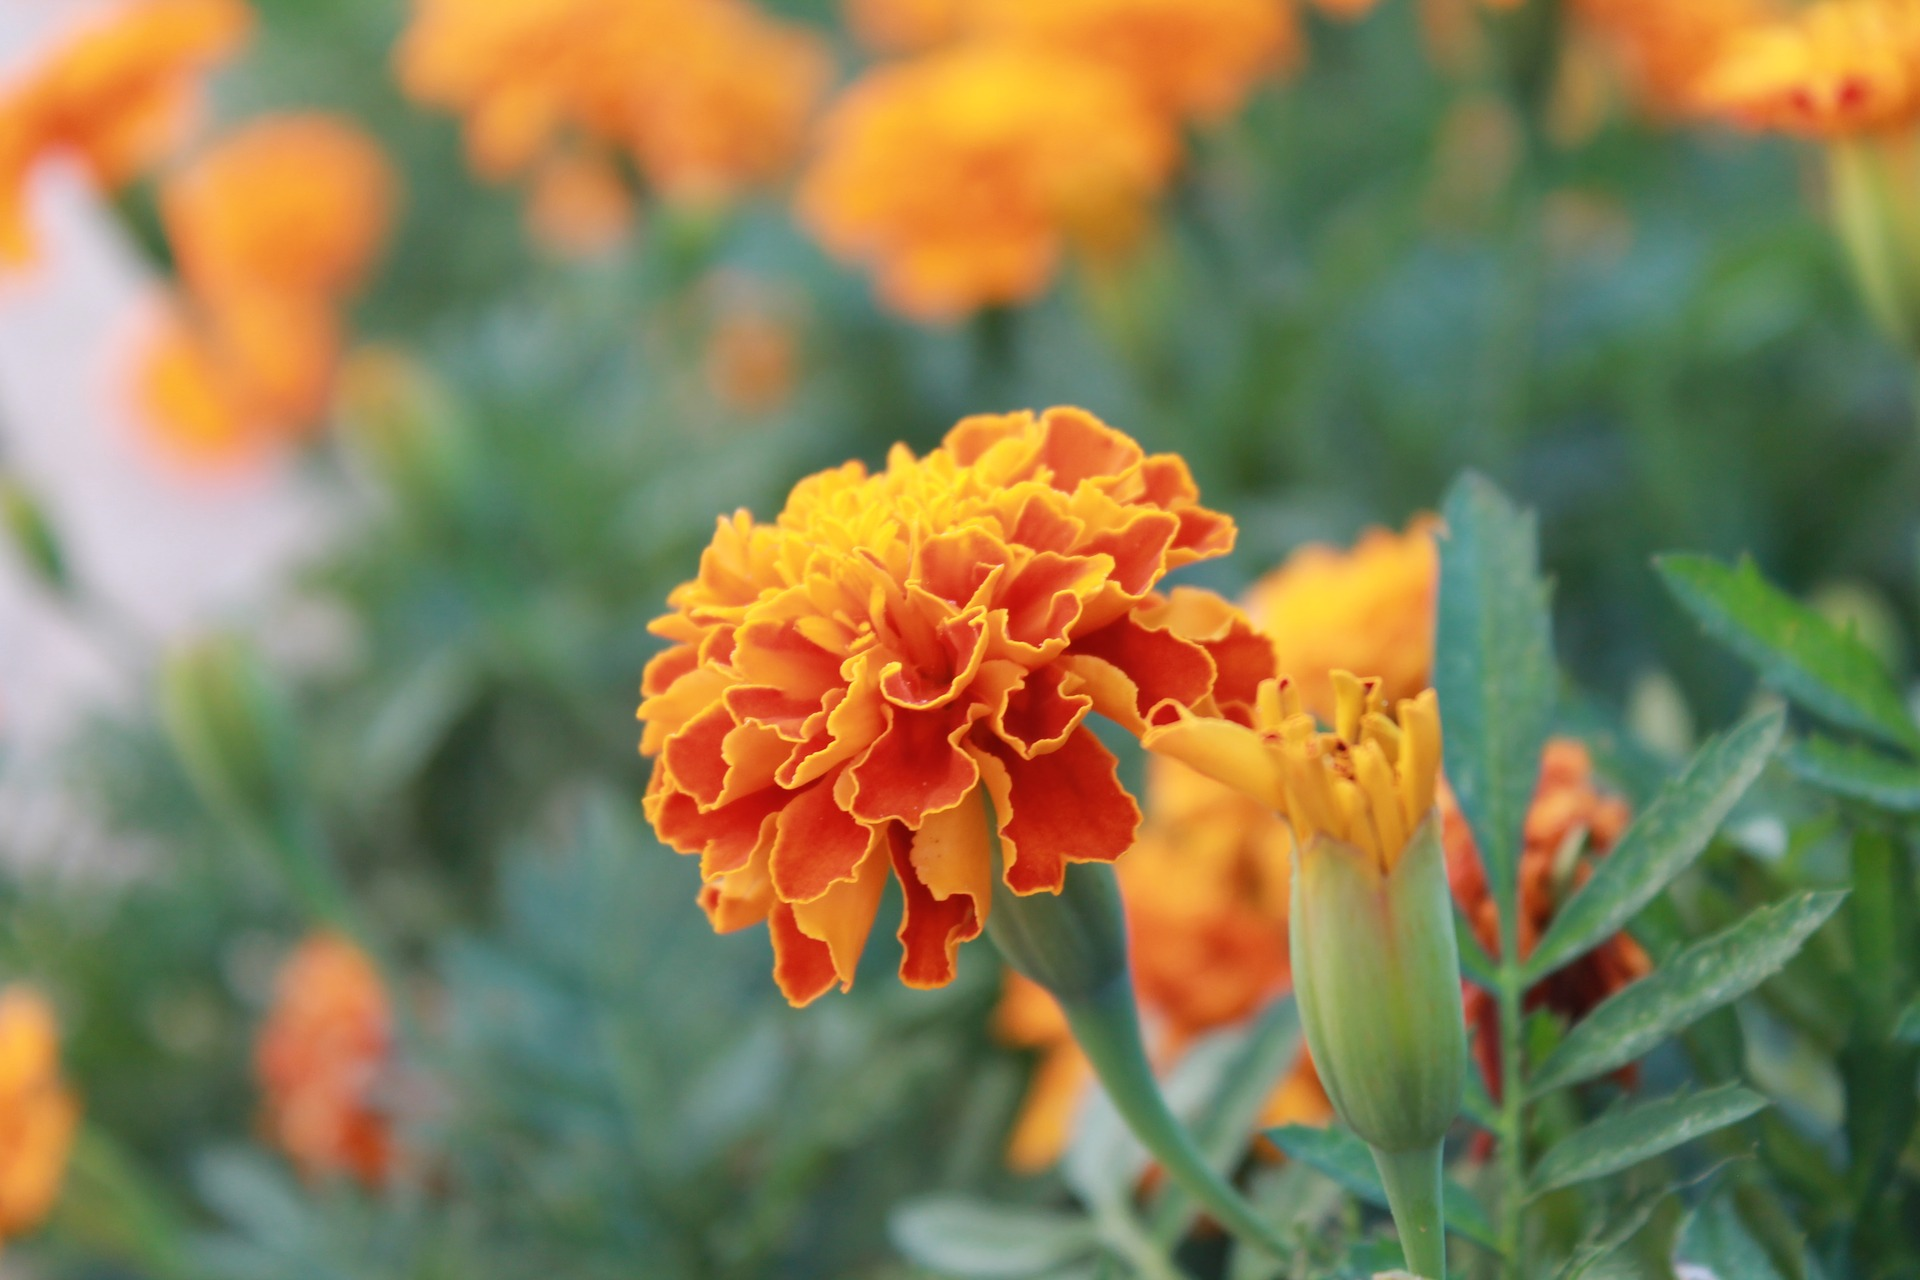 You might consider squeezing in some space to grow some of these flowers in your vegetable garden. They will add some color and help your plants thrive!